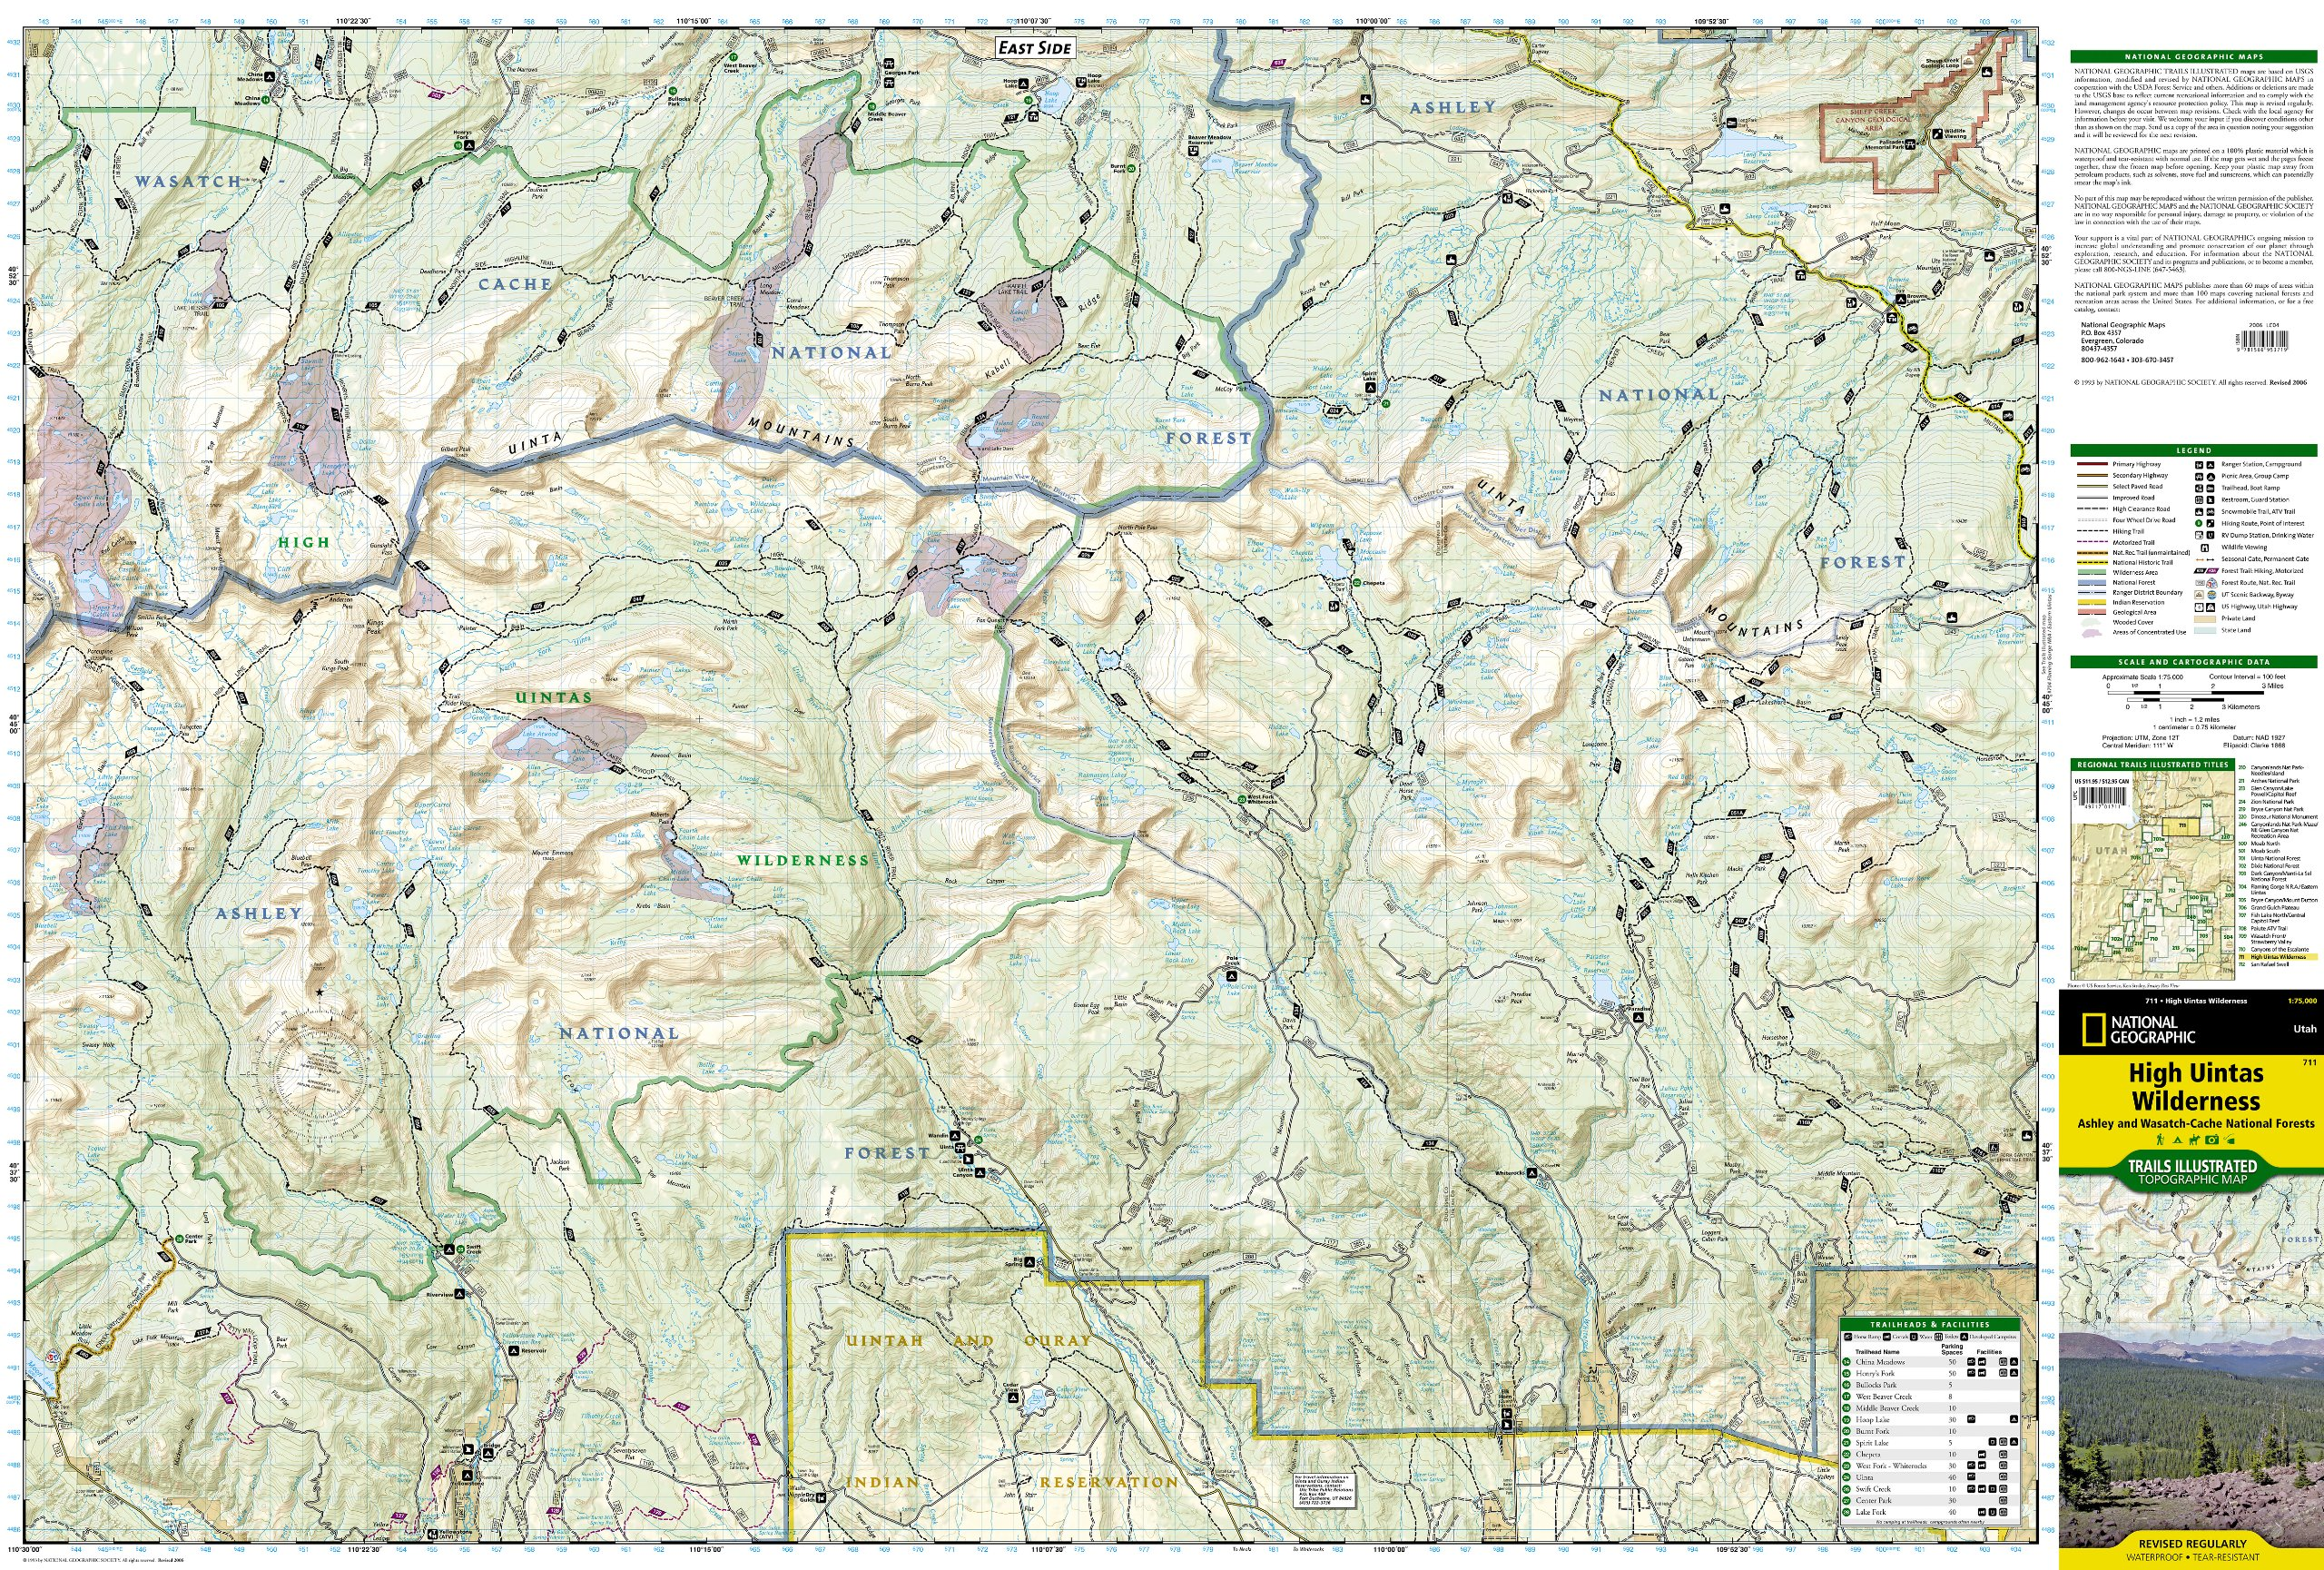 High Uintas Wilderness Map: National Geographic Maps - Trails ...